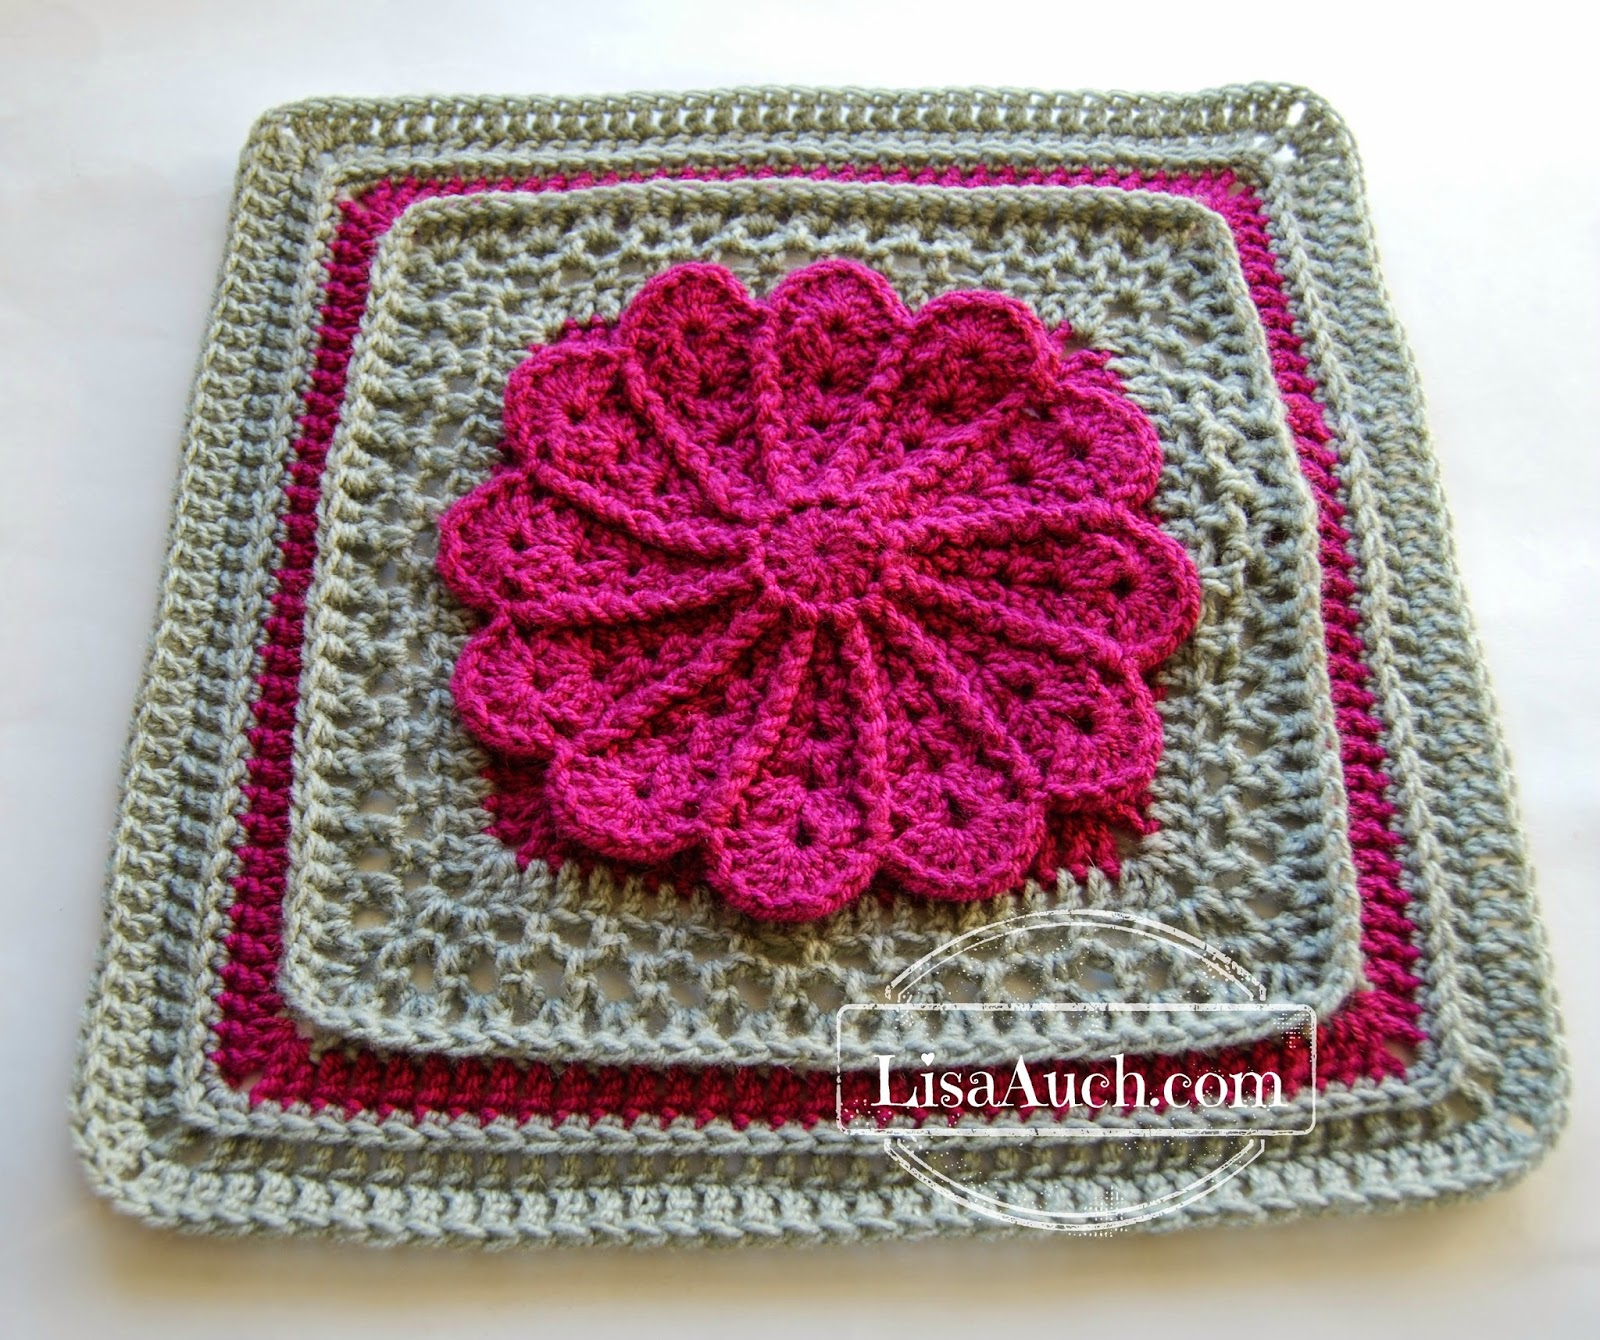 Free Crochet Patterns And Designs By Lisaauch : Pane in My Dahlia ~ FREE Crochet Pattern